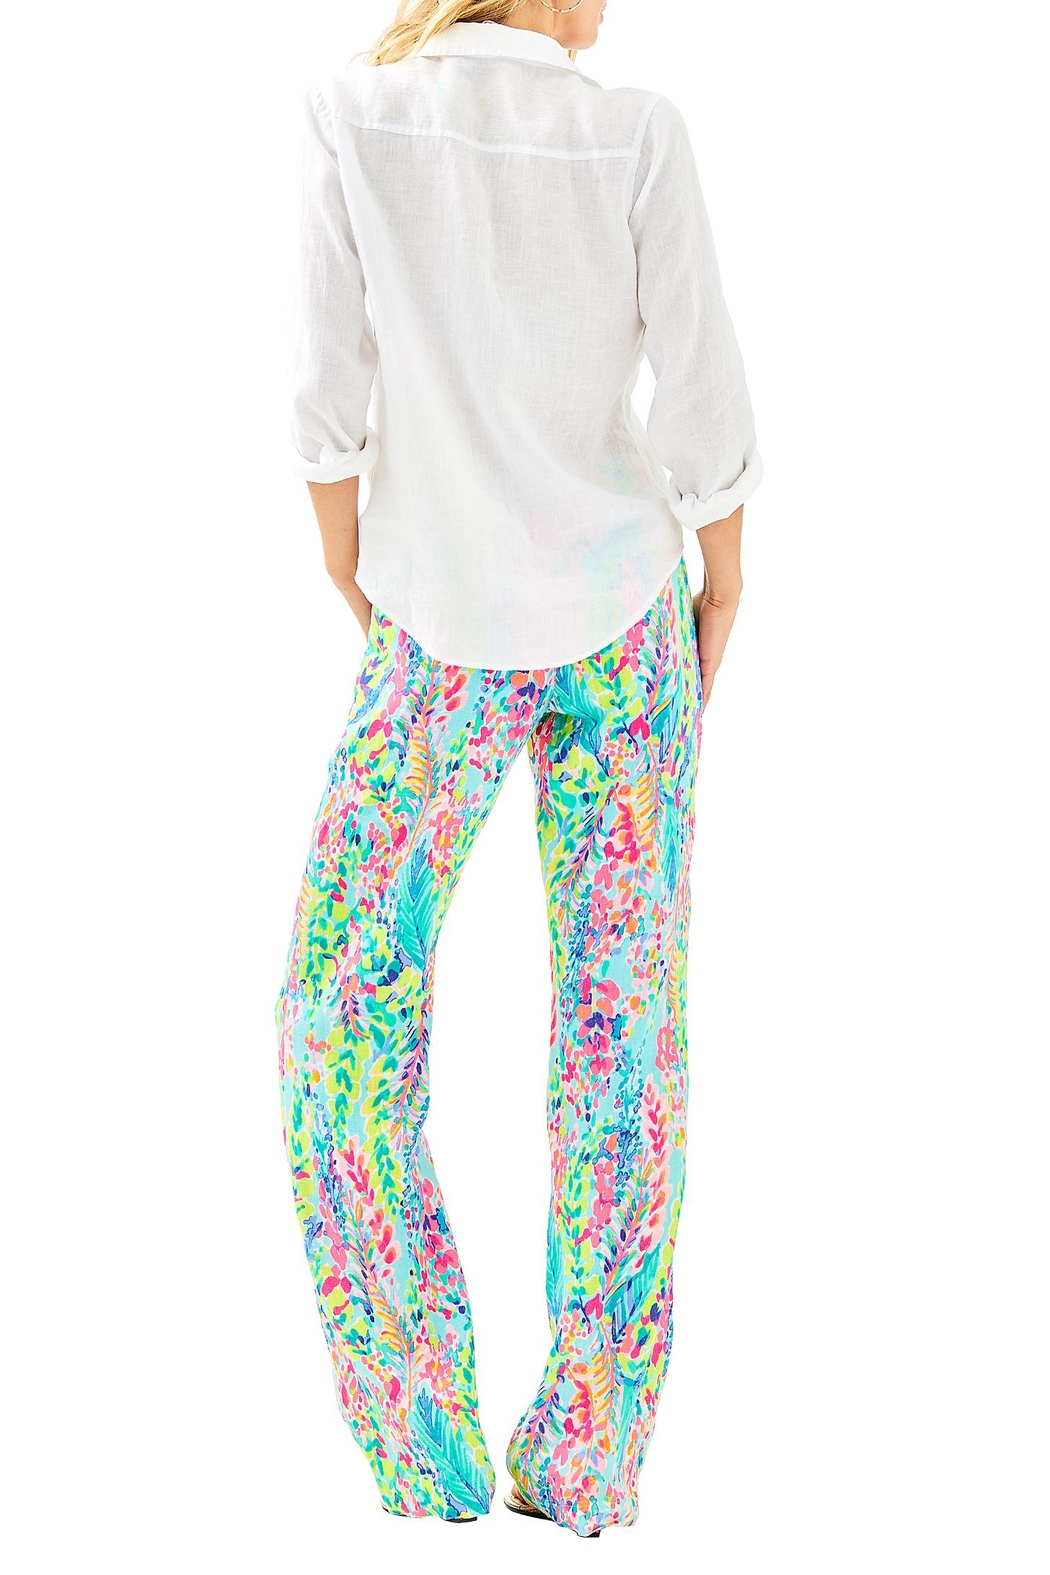 Lilly Pulitzer Sea View Top - Front Full Image